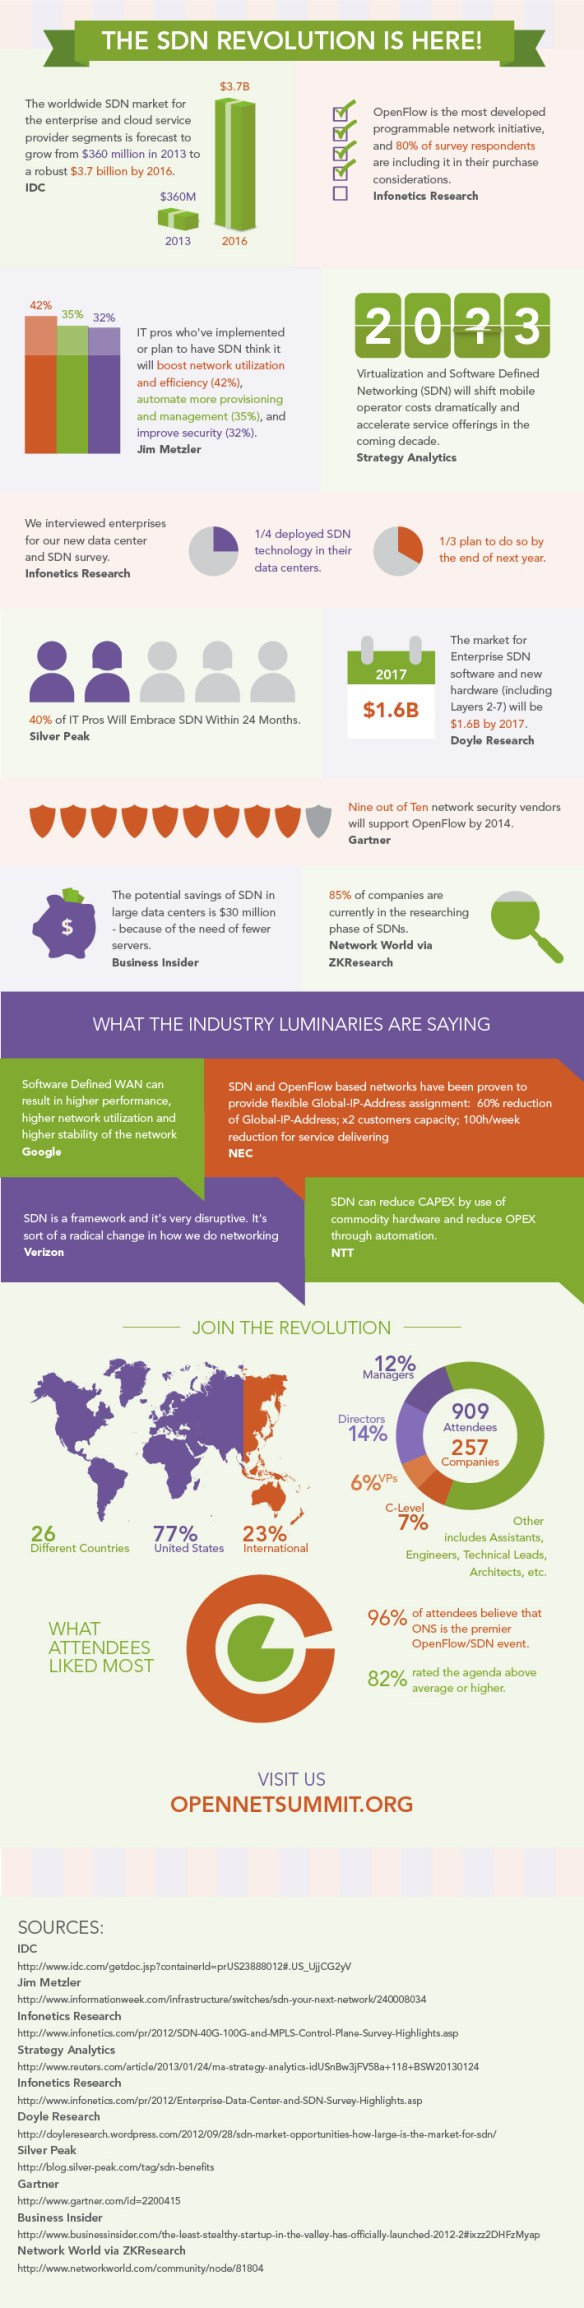 SDN Infographic